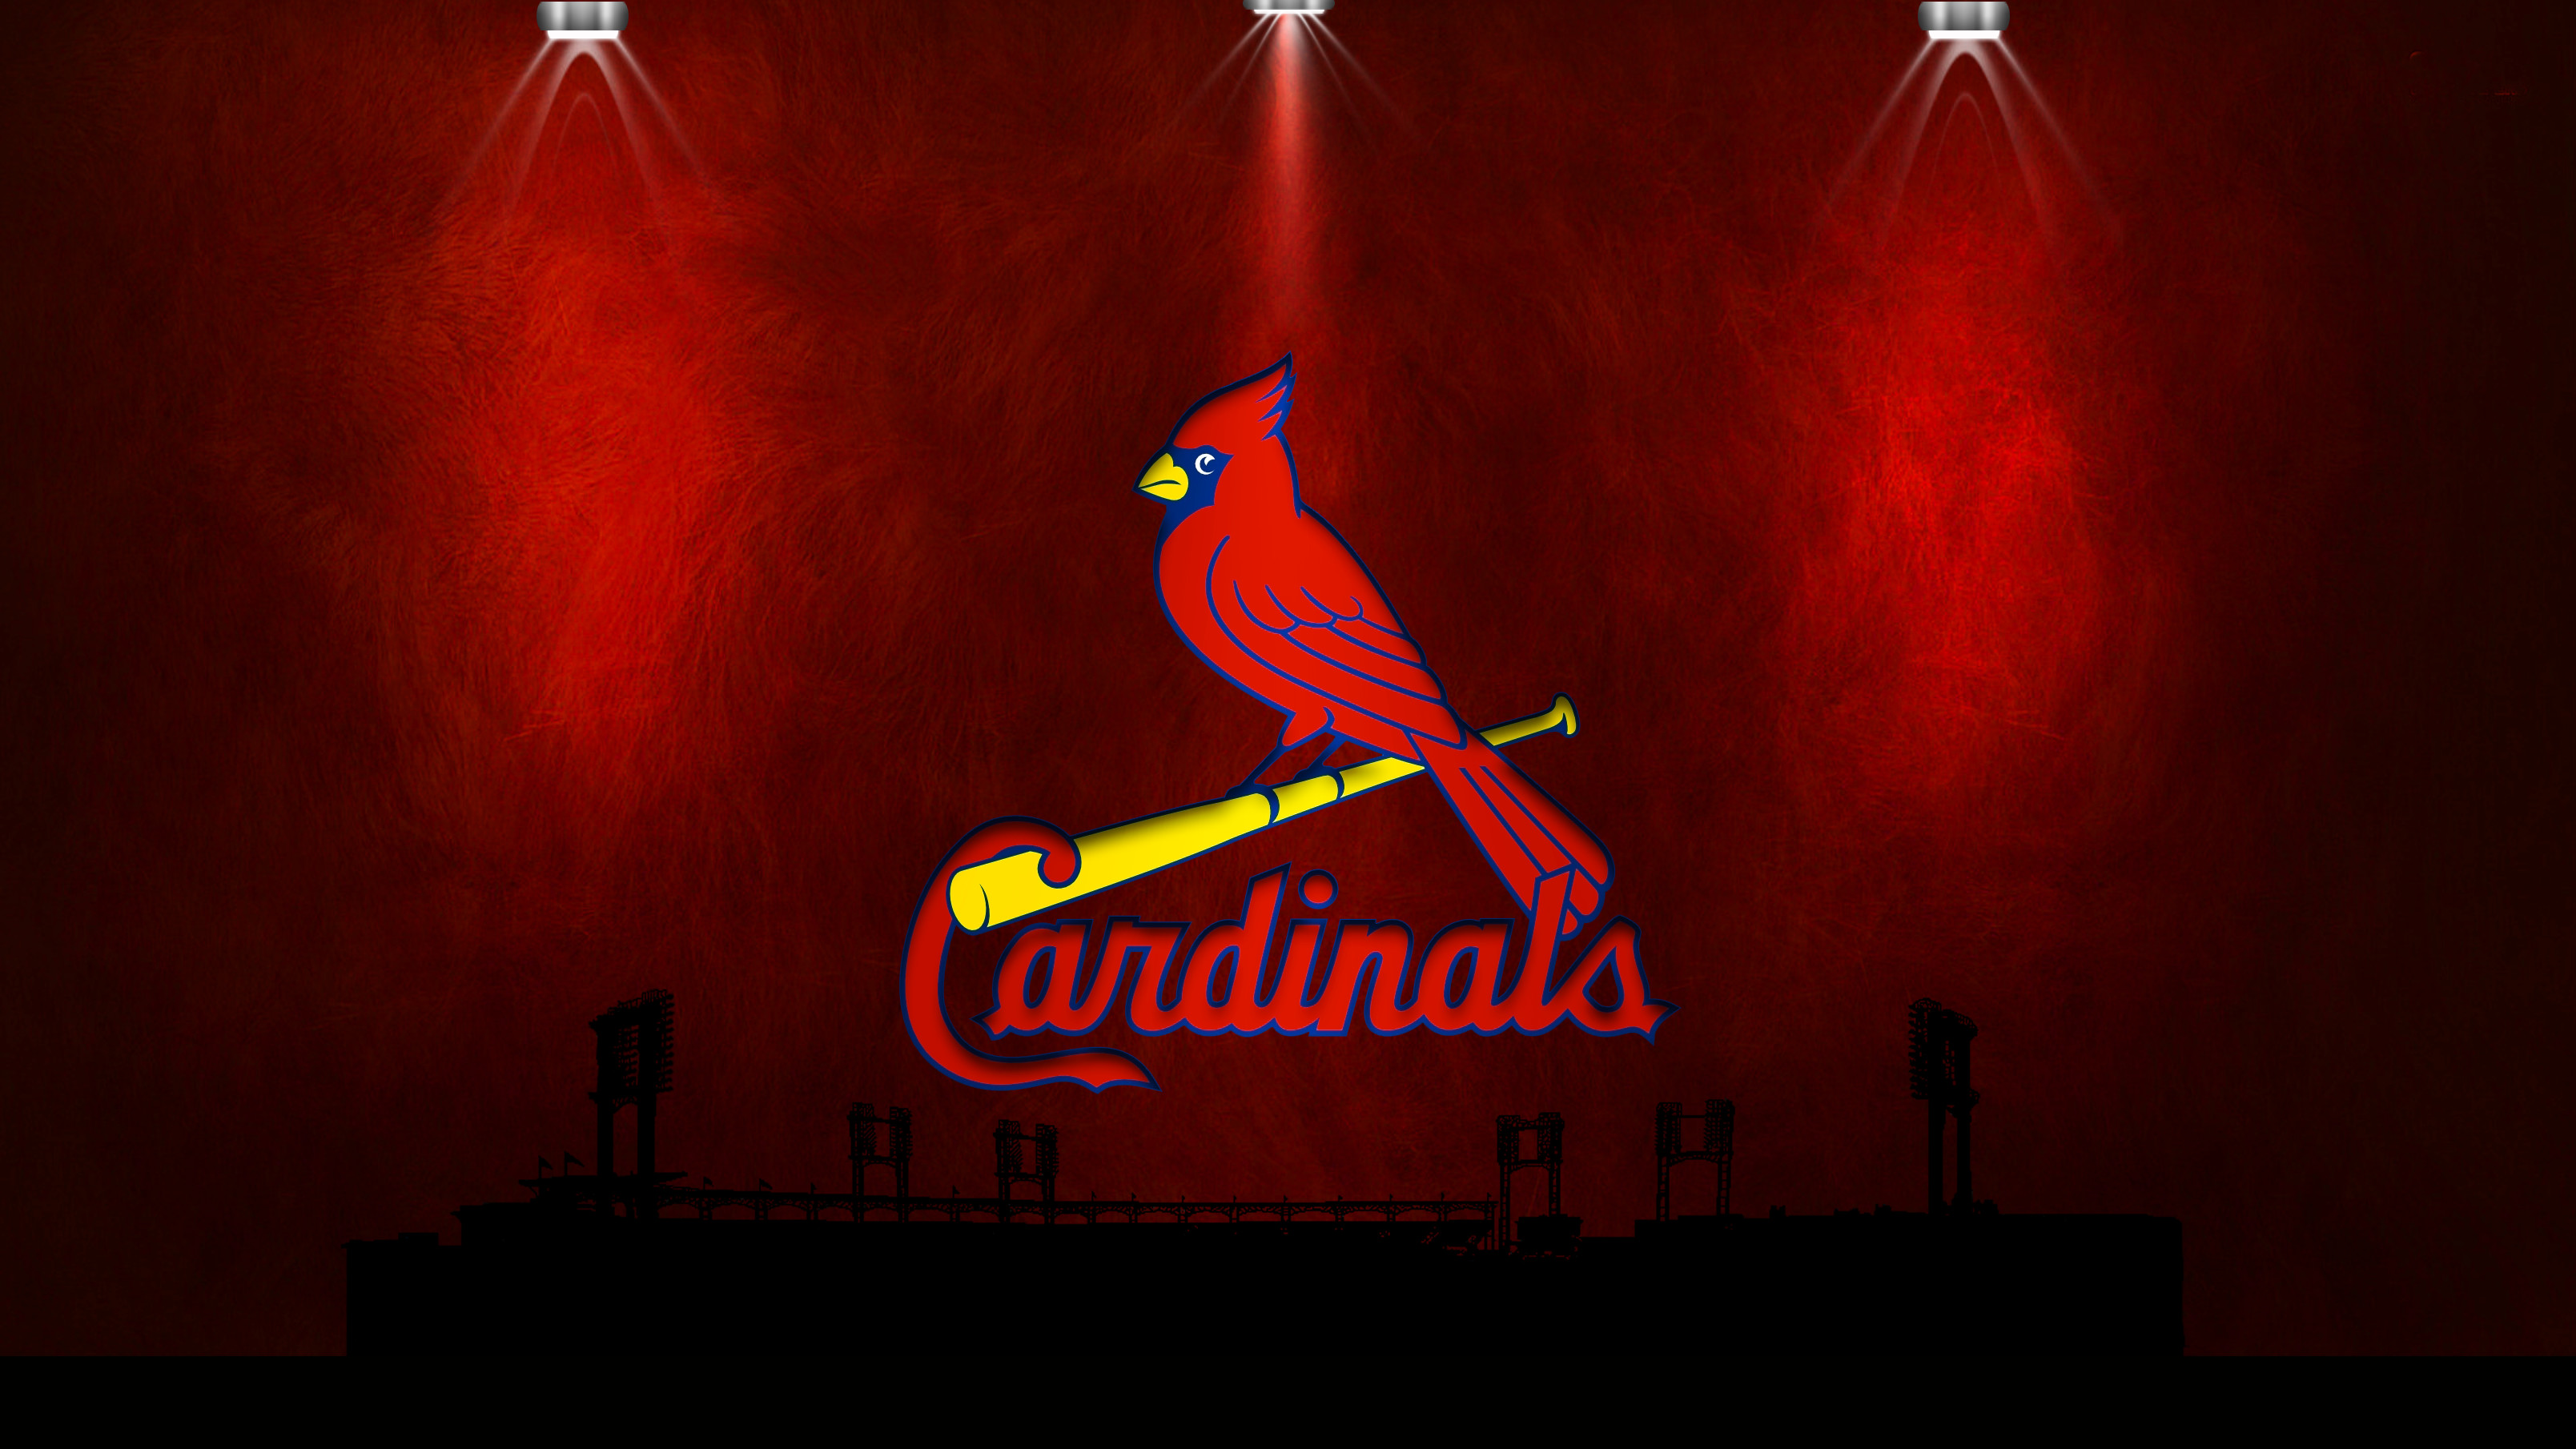 3217x1810 baseball st louis cardinals major league baseball wallpaper hd